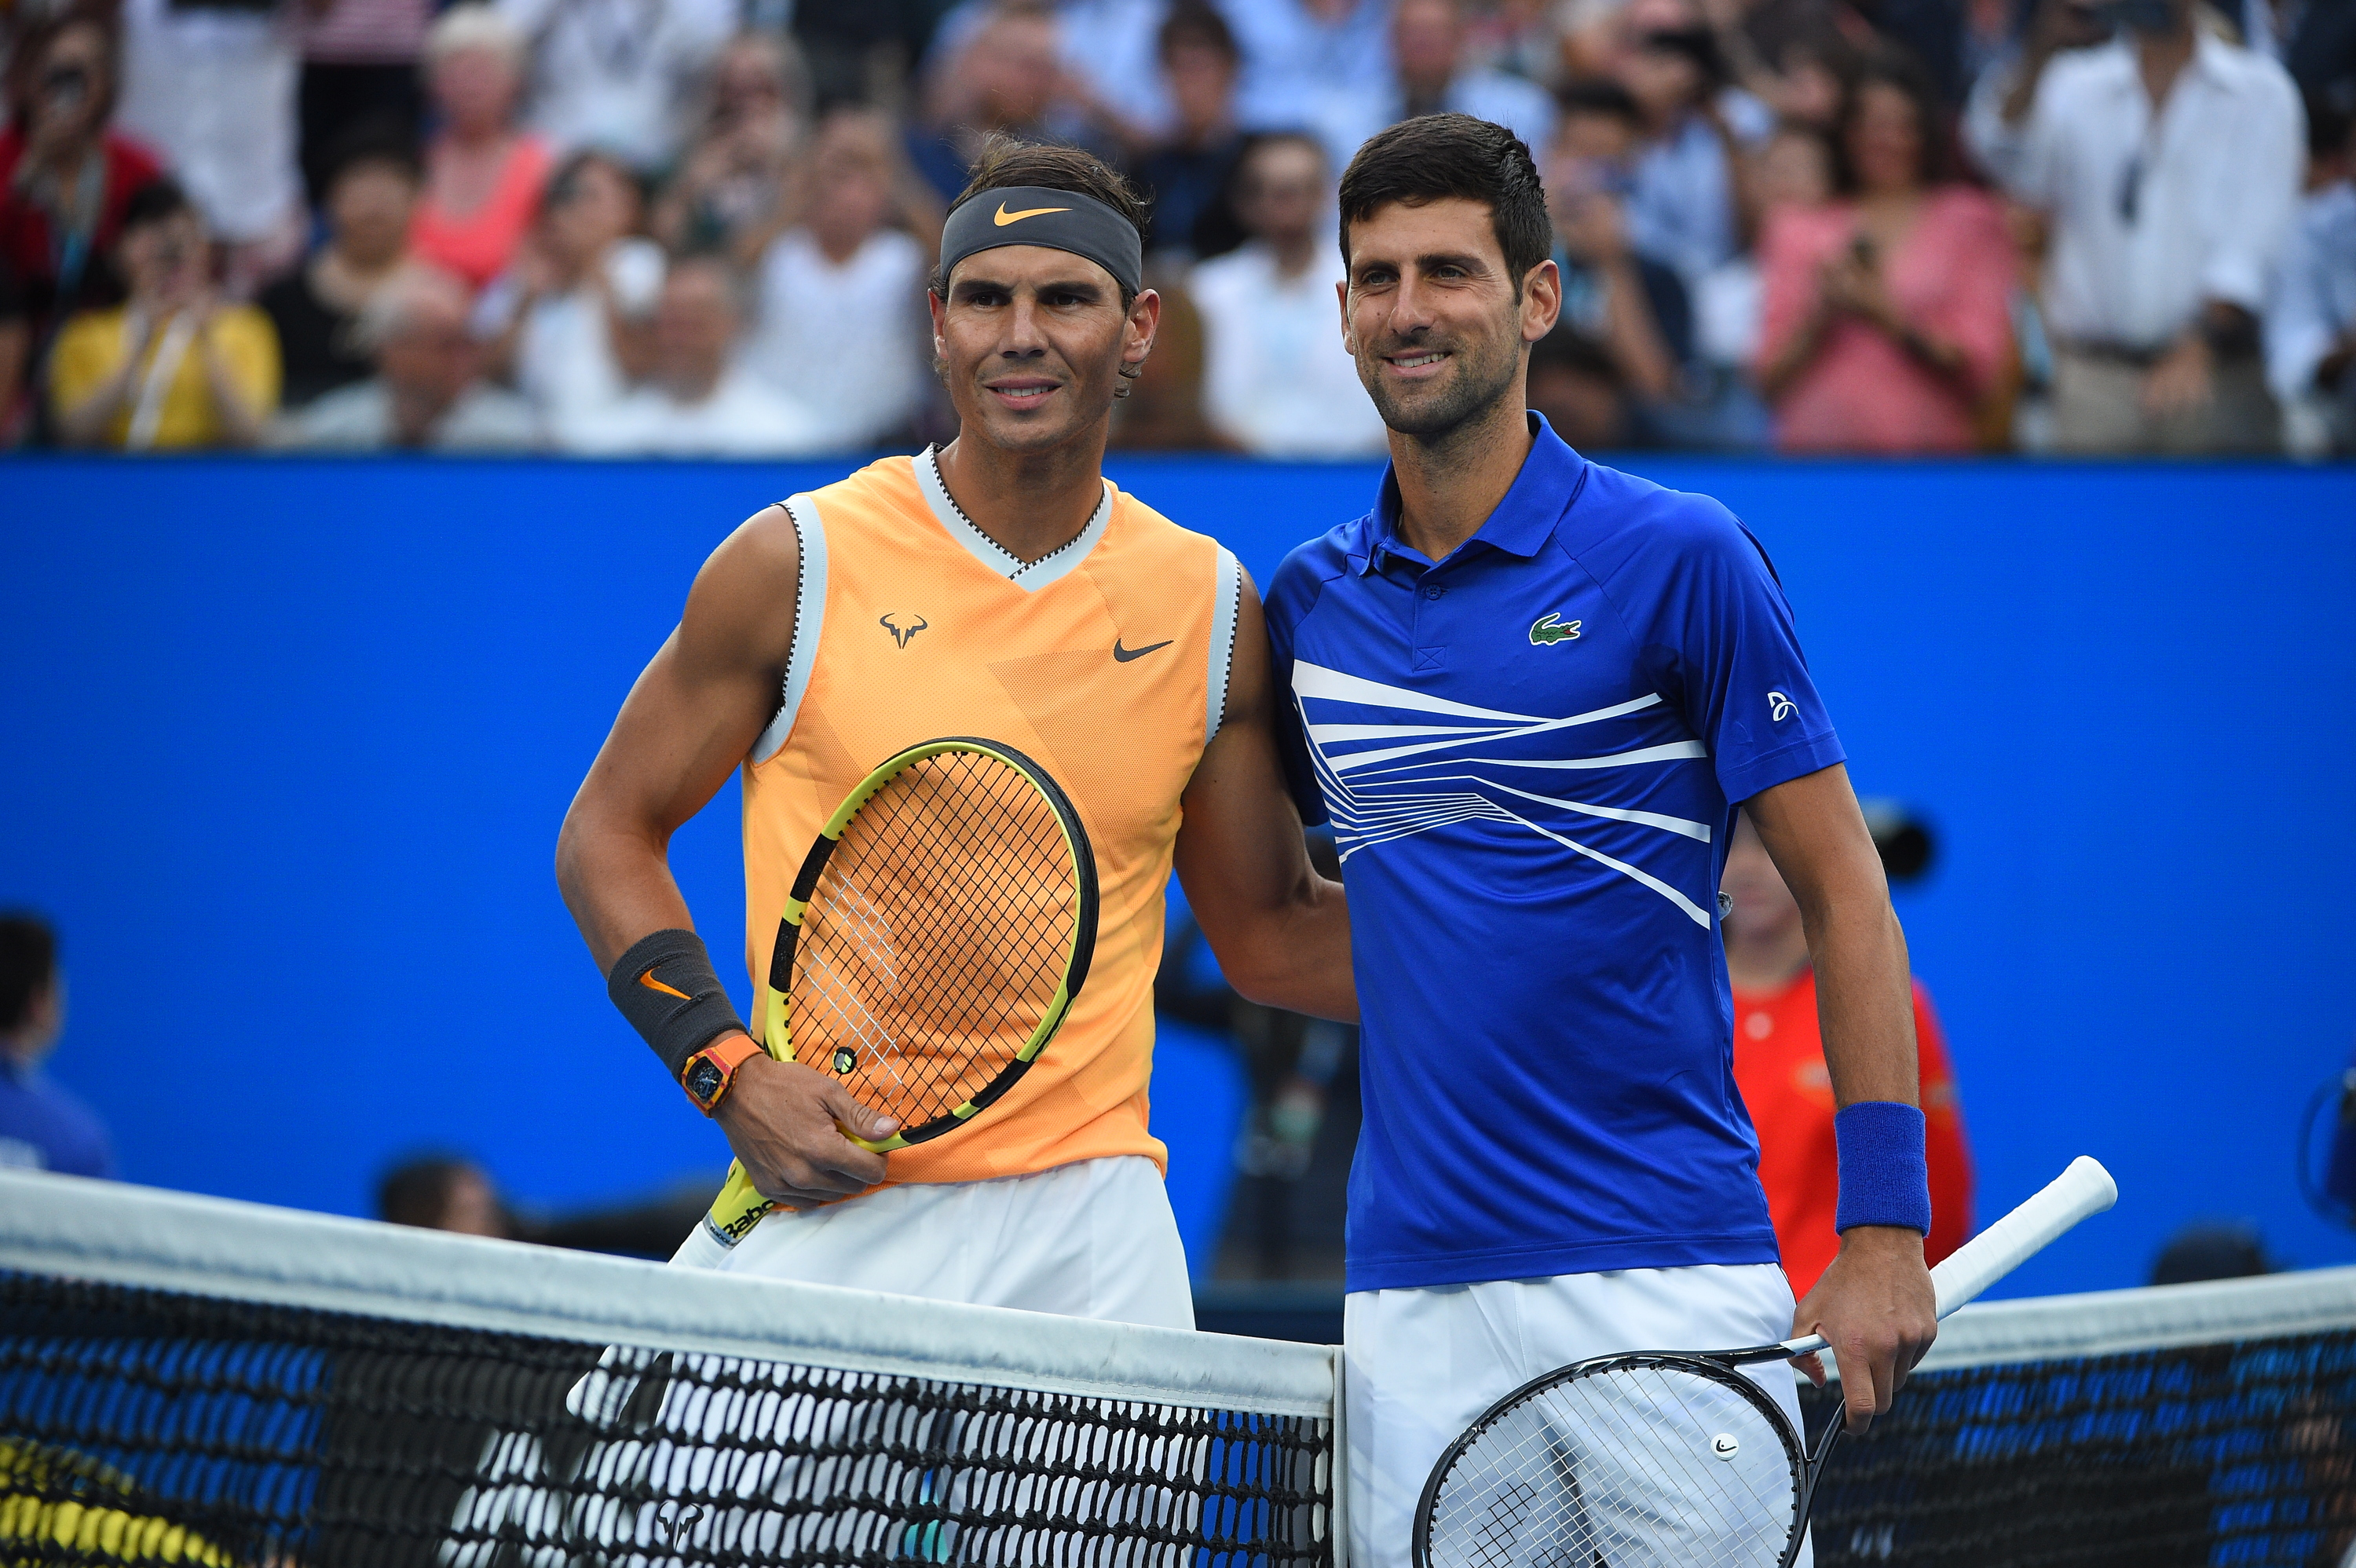 Rafael Nadal and Novak Djokovic posing before the 2019 Australian Open final